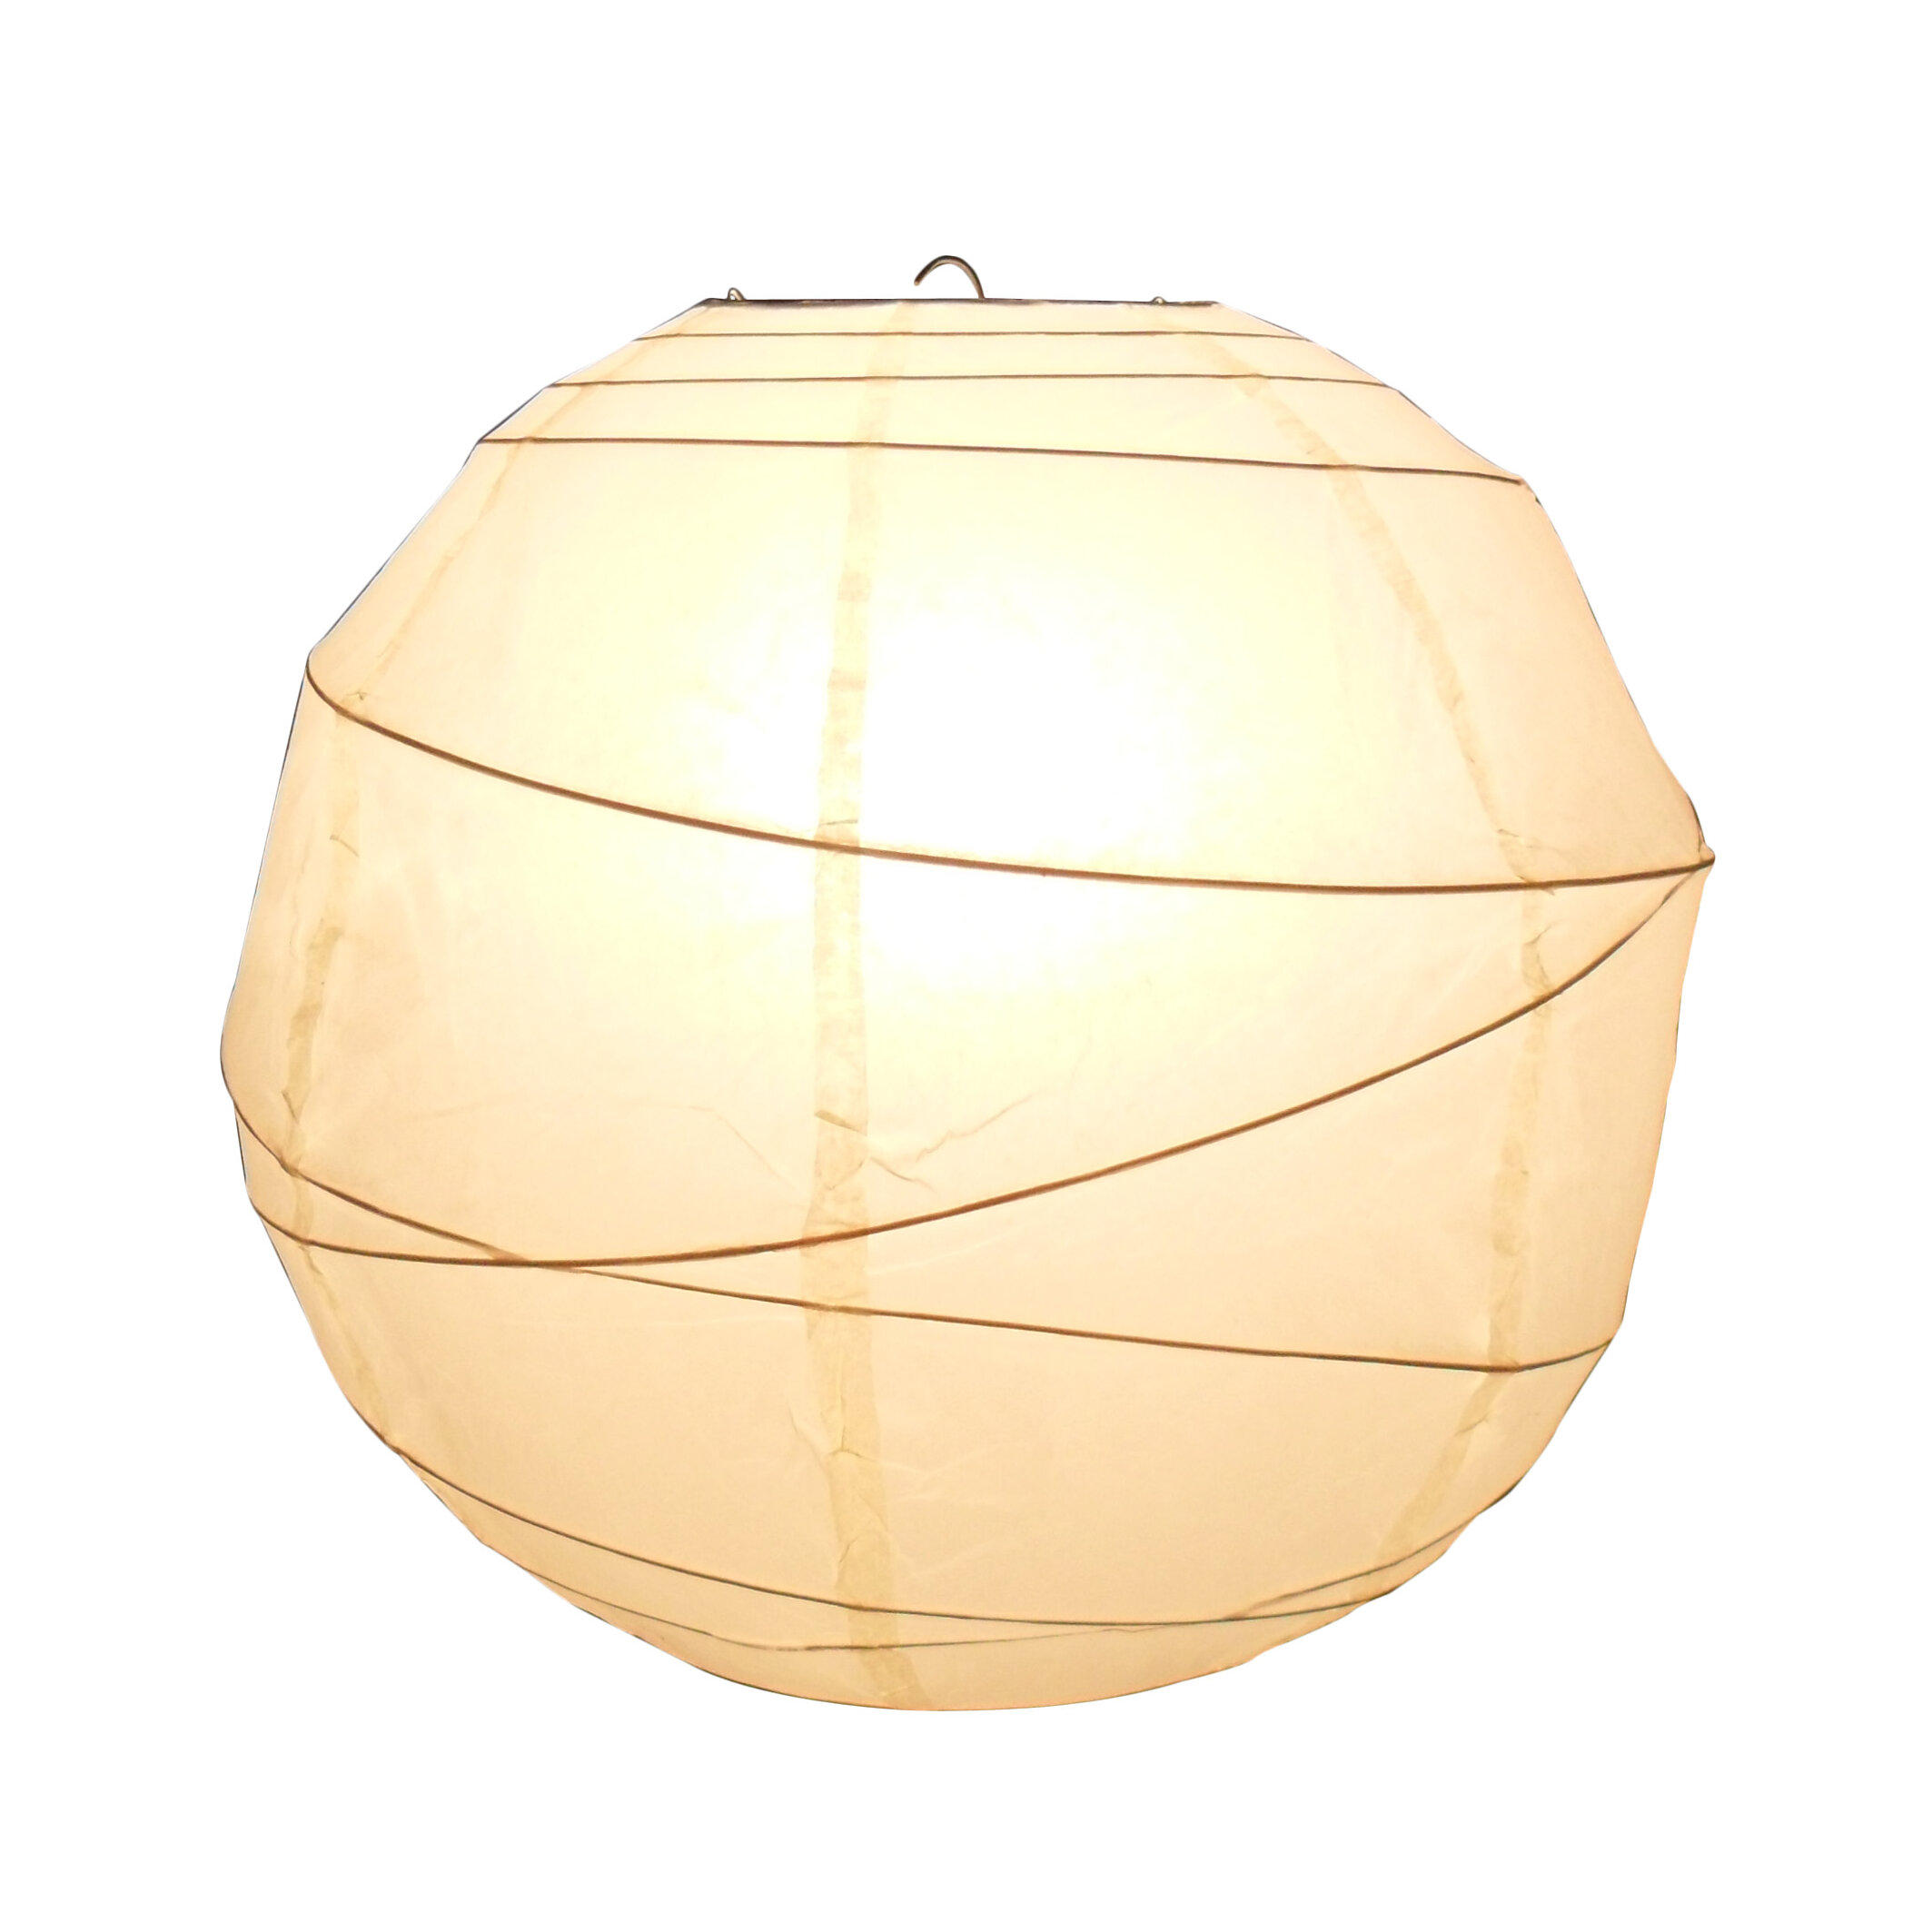 Loxton lighting wayfair 30cm paper sphere pendant shade set of 2 by loxton lighting mozeypictures Gallery